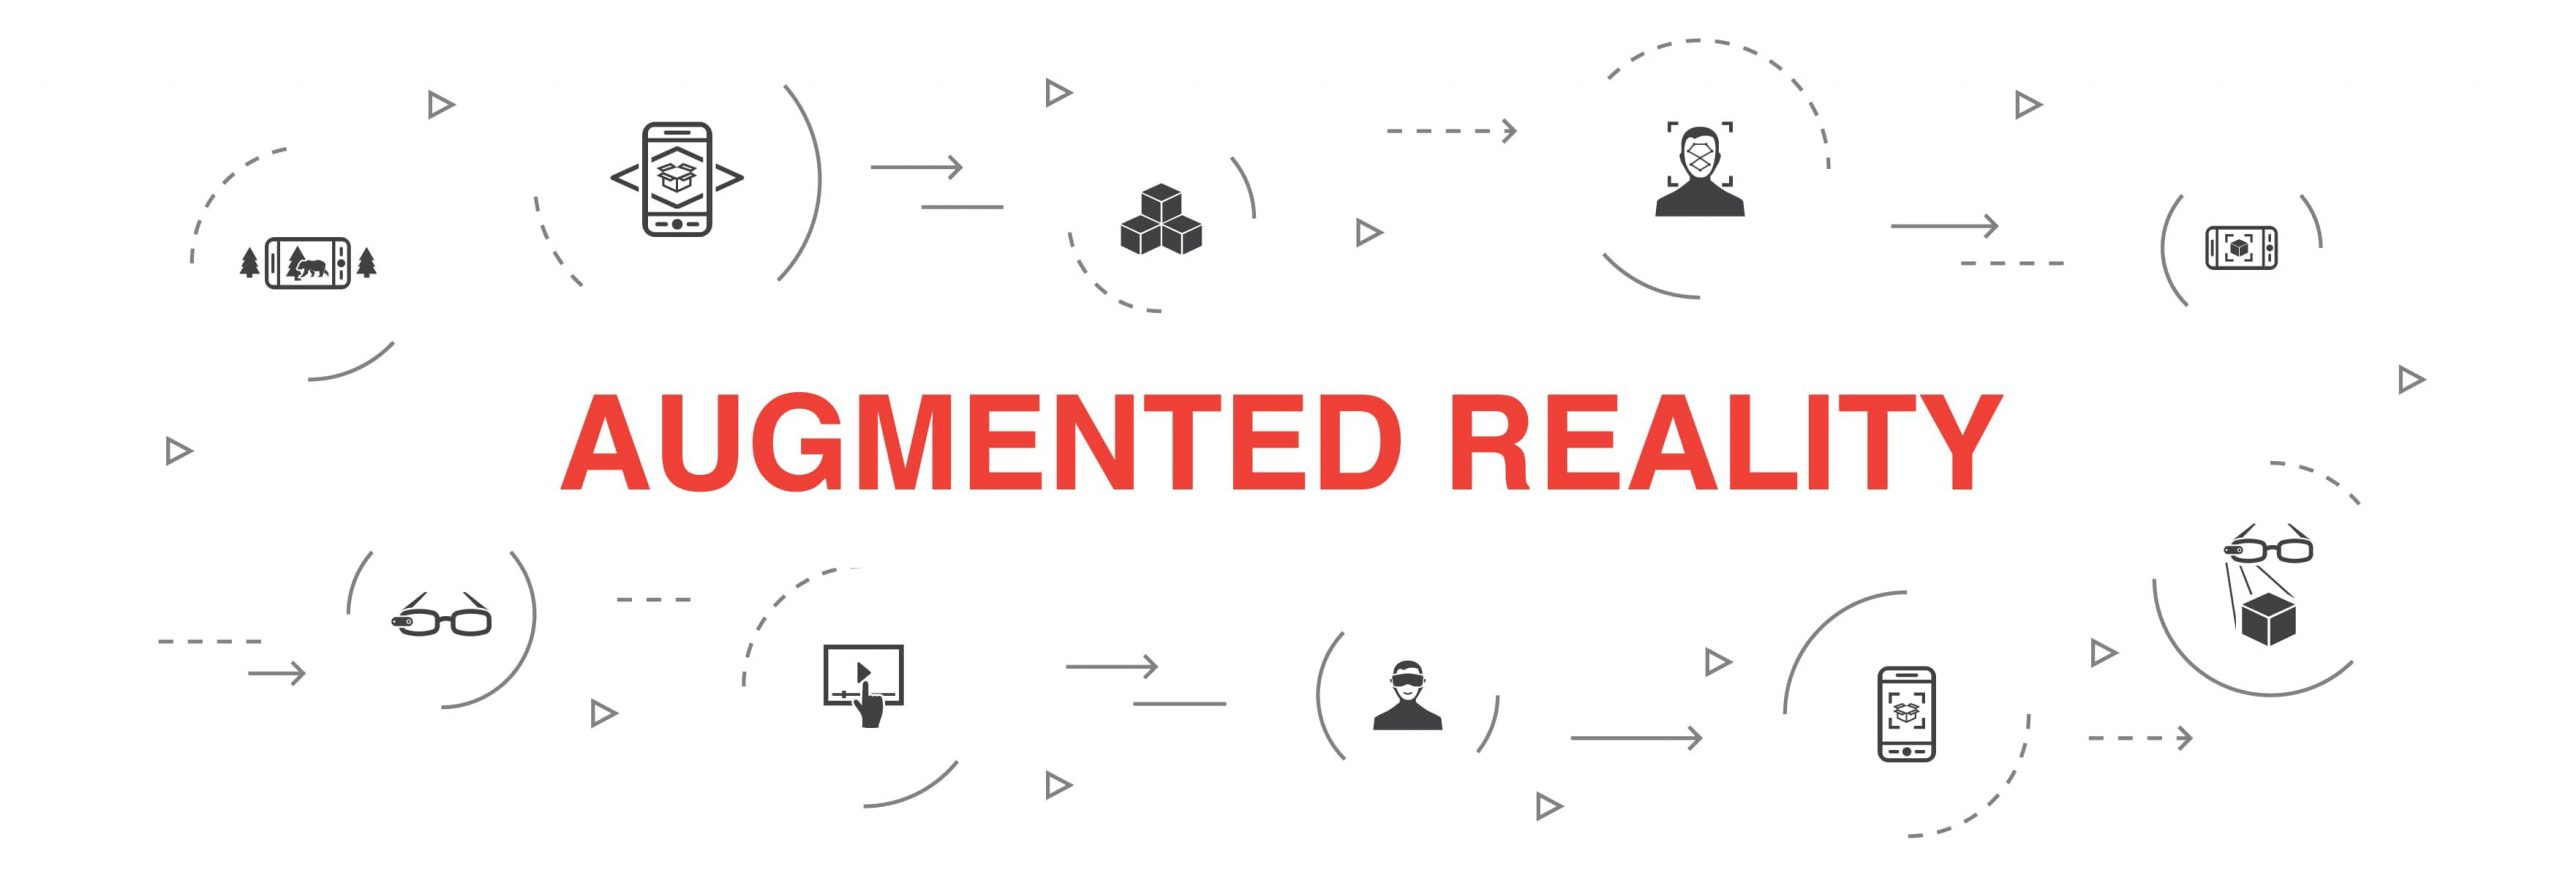 Challenges of Augmented Reality